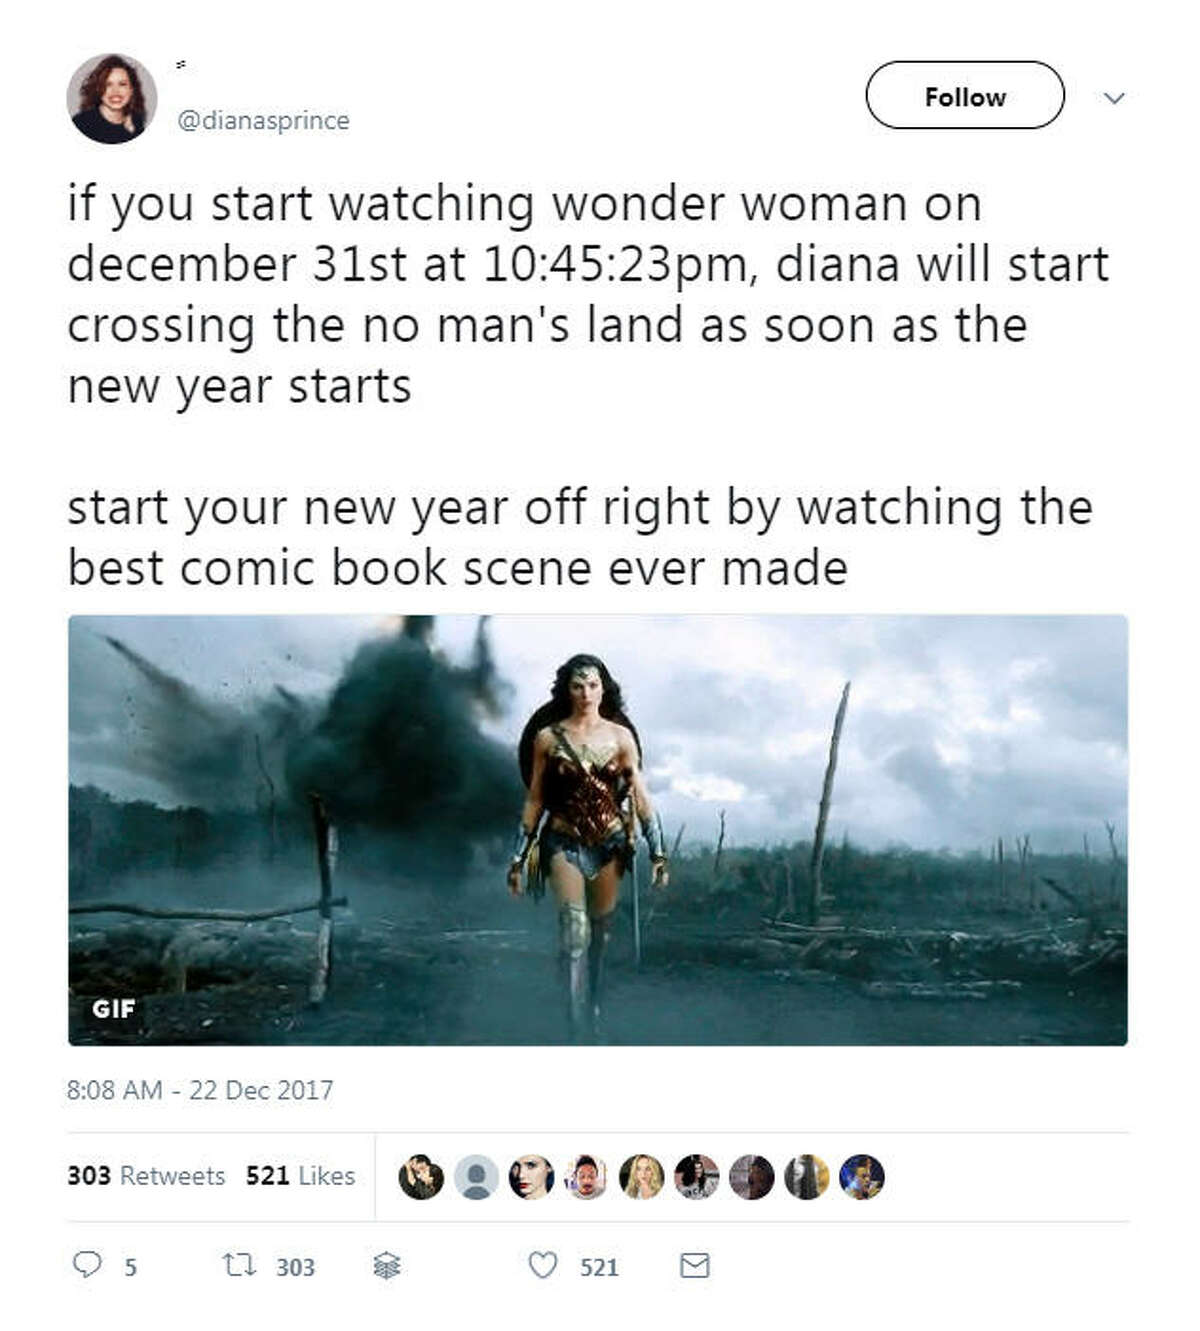 """""""if you start watching wonder woman on december 31st at 10:45:23pm, diana will start crossing the no man's land as soon as the new year starts start your new year off right by watching the best comic book scene ever made"""" Source: Twitter"""